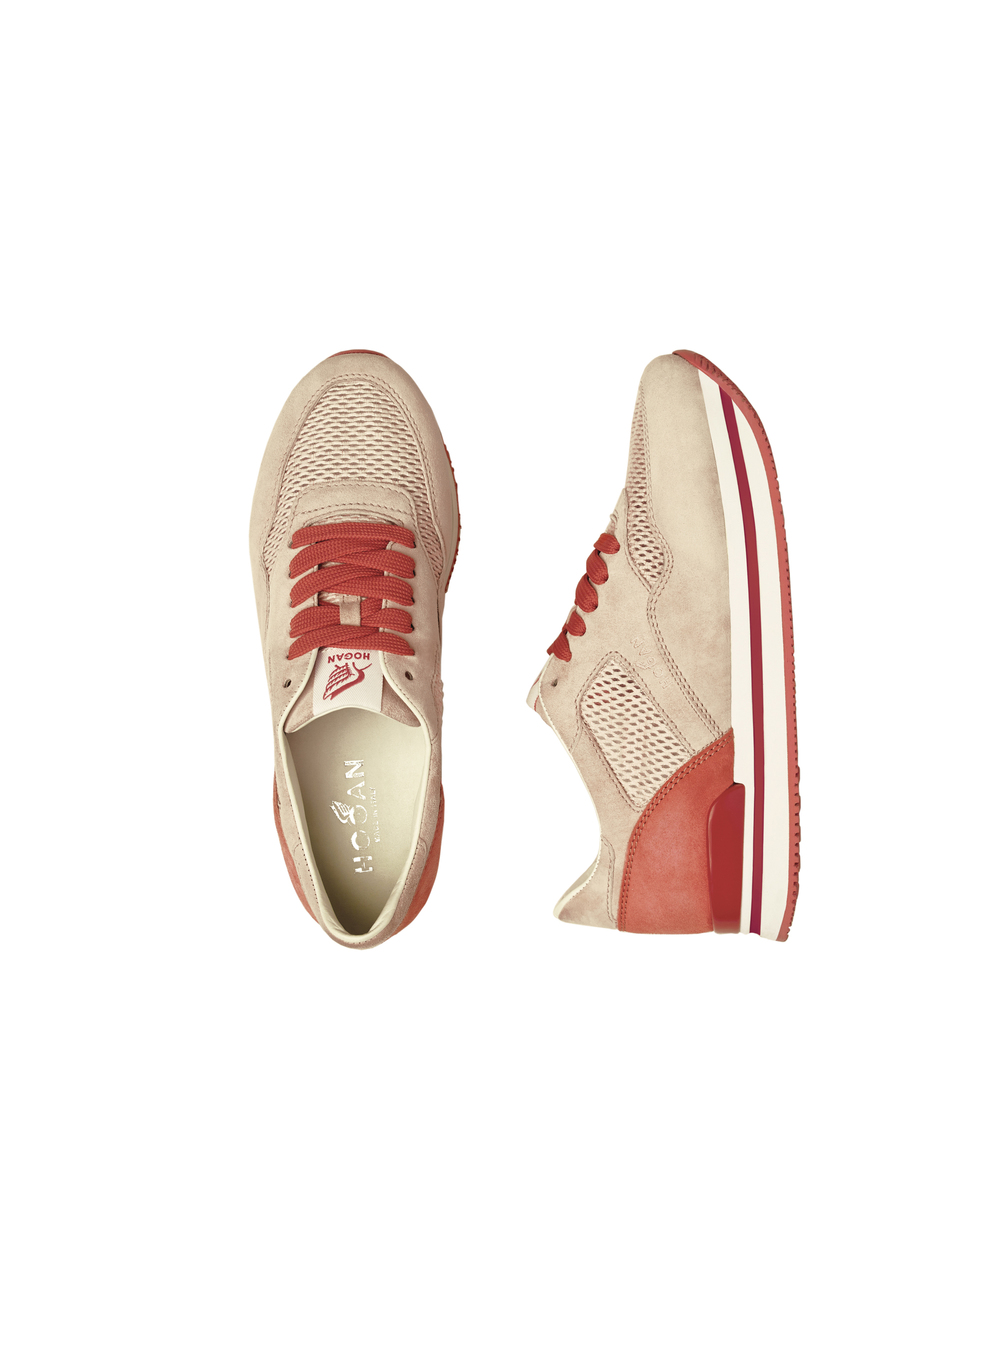 28-the H222 sneaker in pale pink and blush suede.jpg